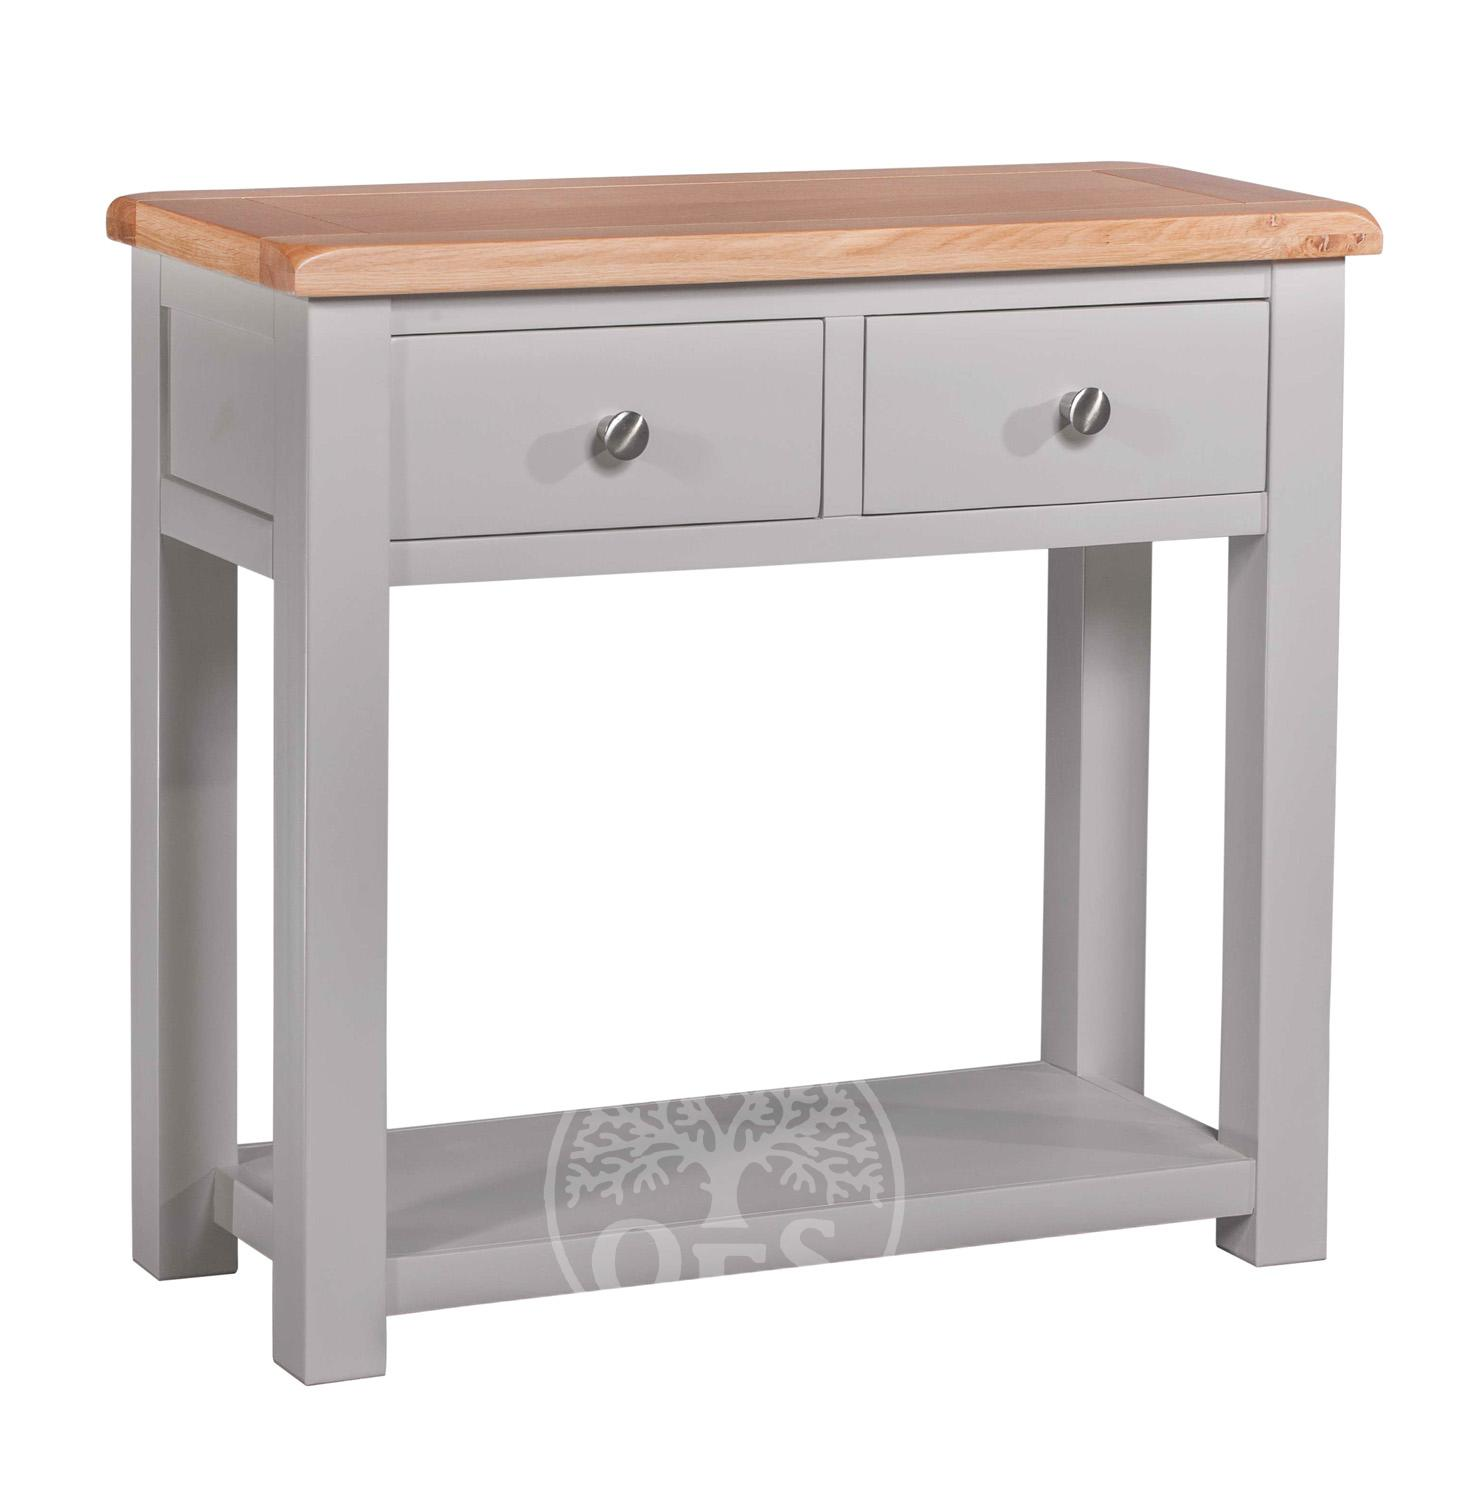 An image of Devonshire Diamond Painted Console Table